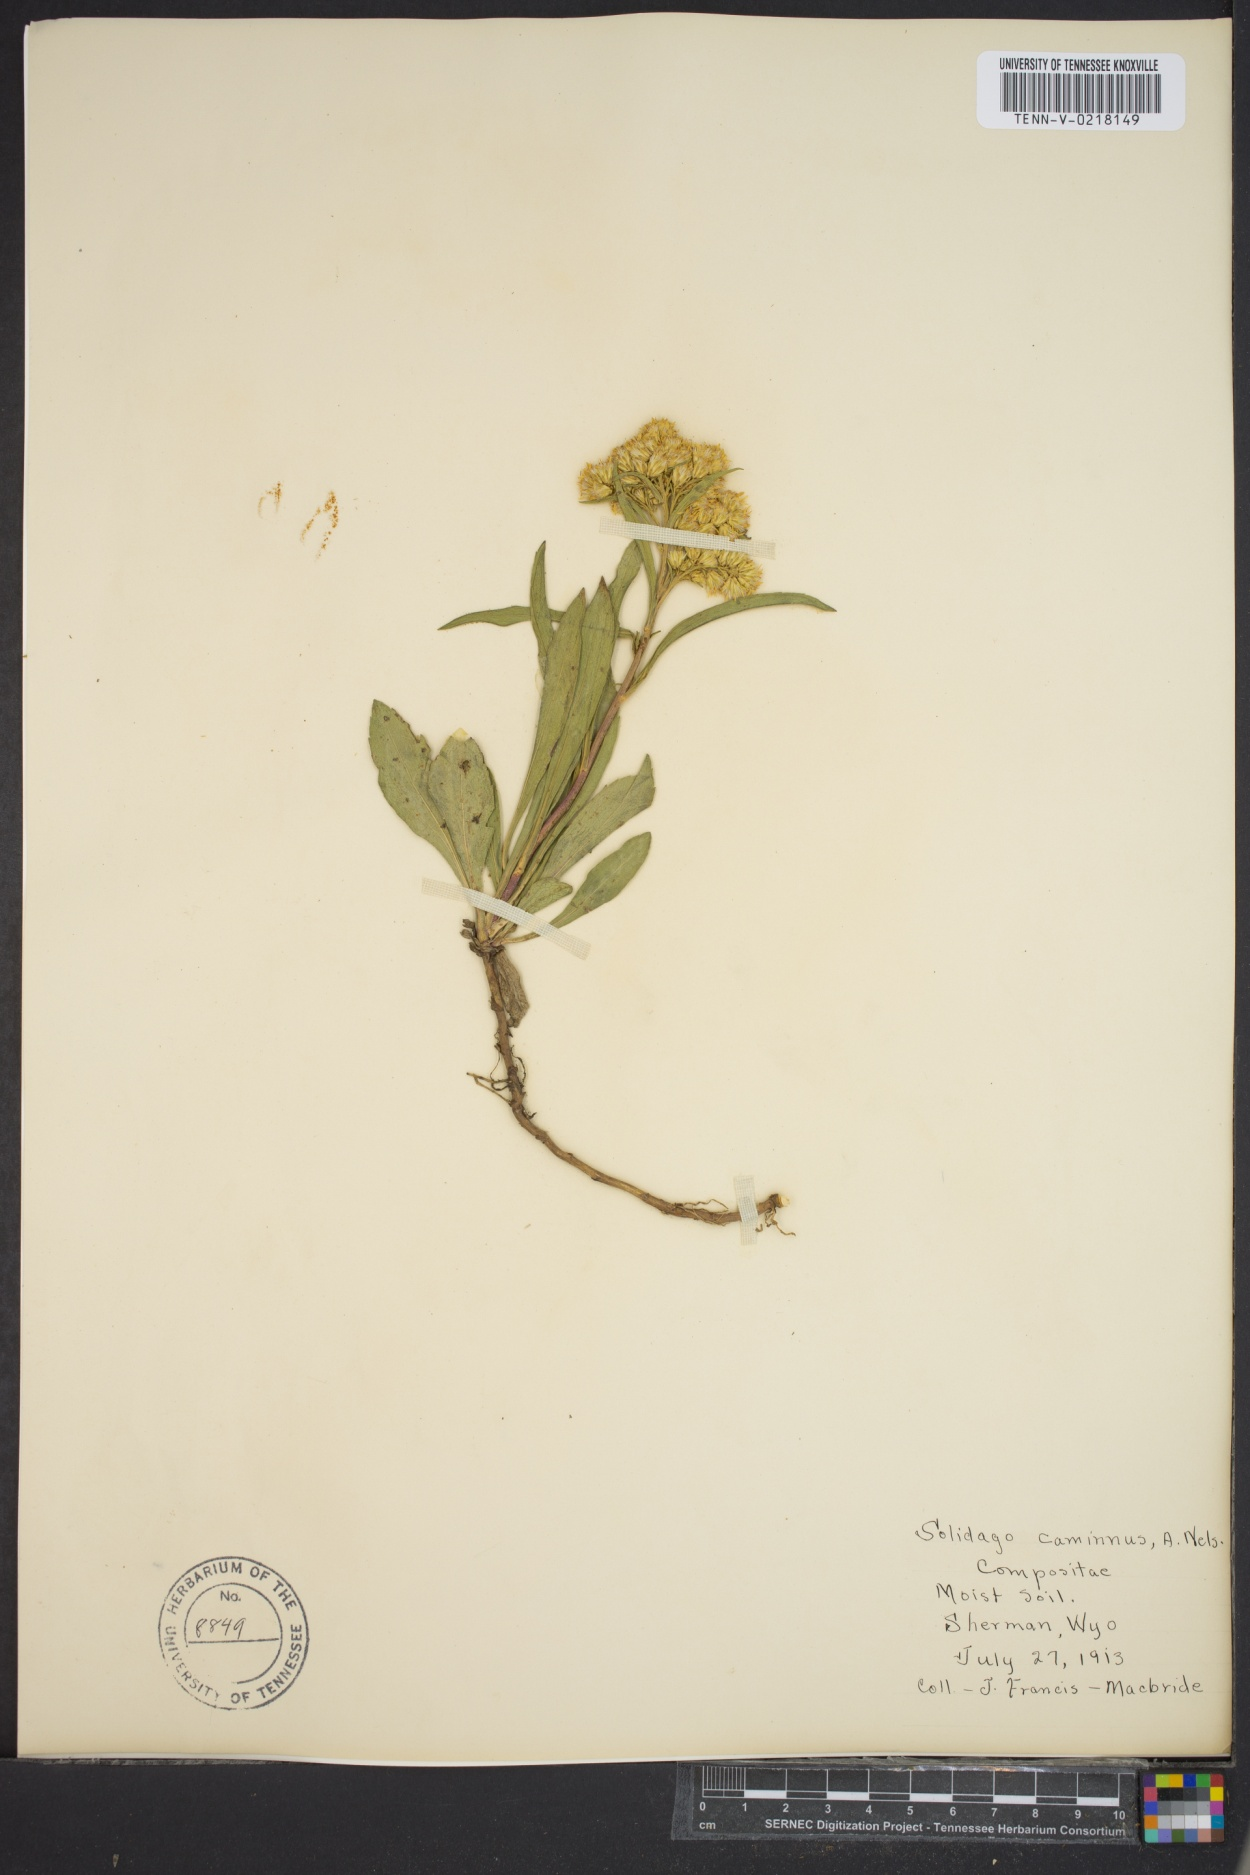 Solidago camporum image